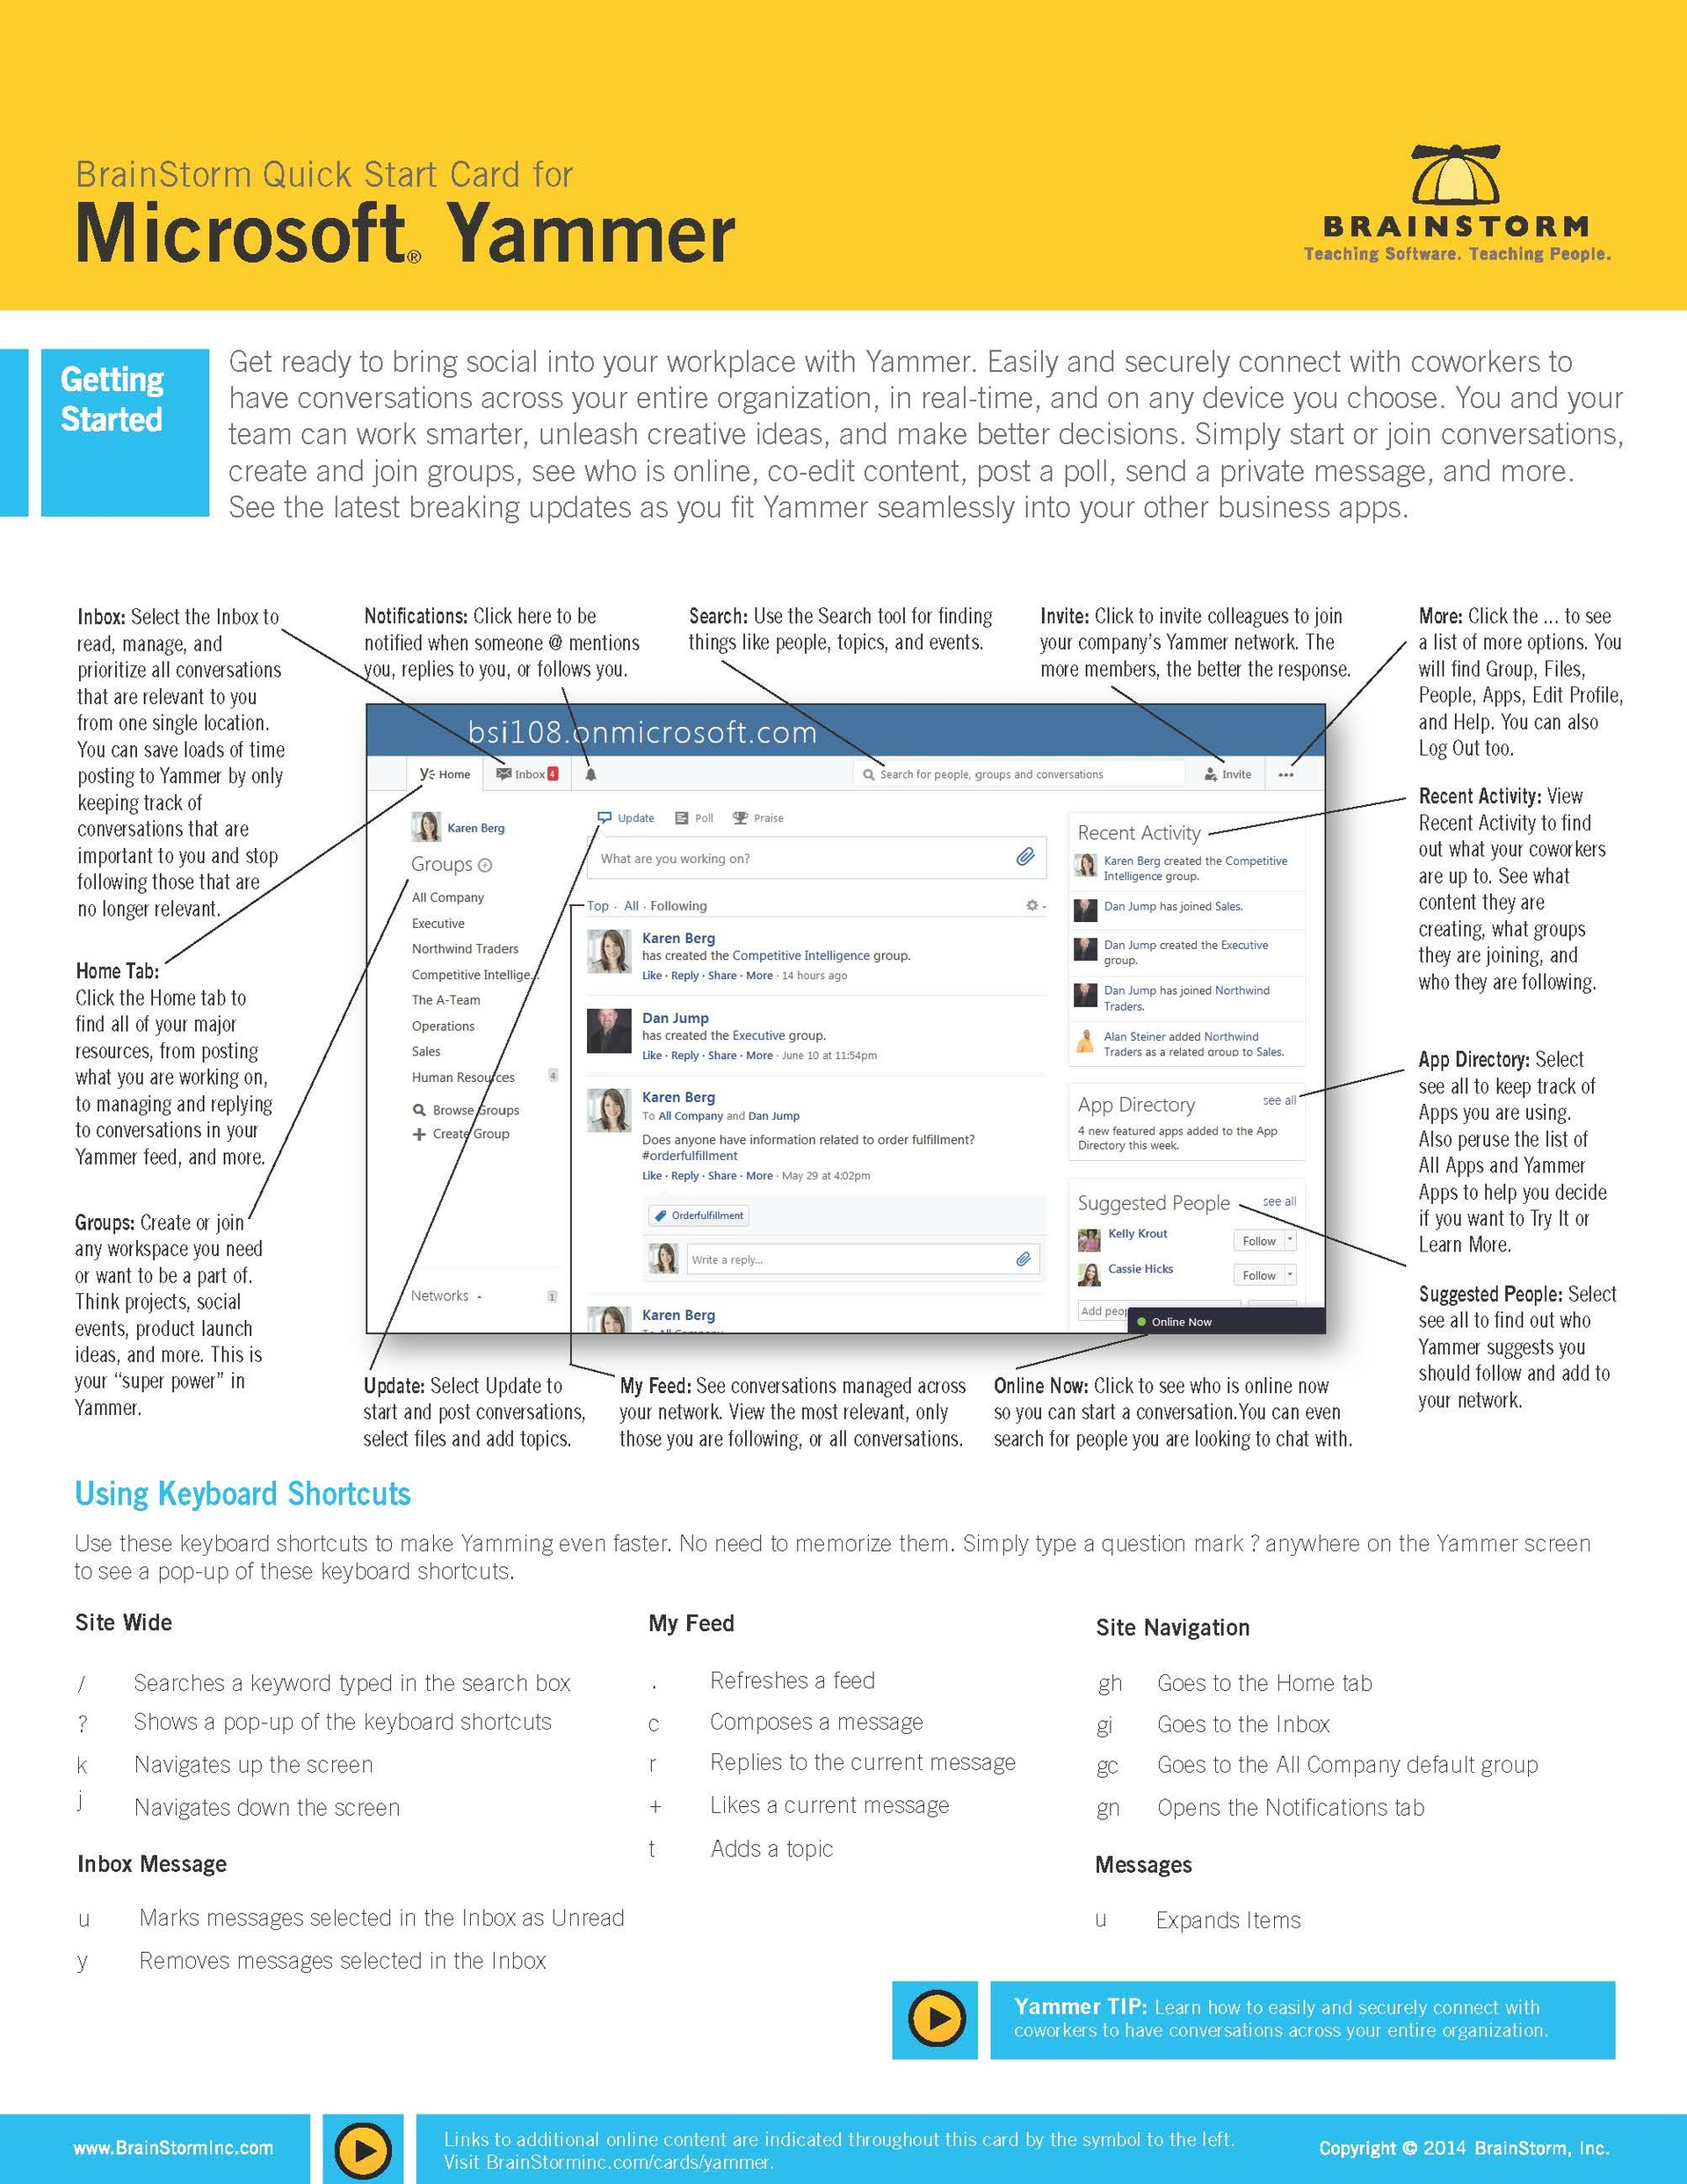 Quick start card of features and process of MS Yammer